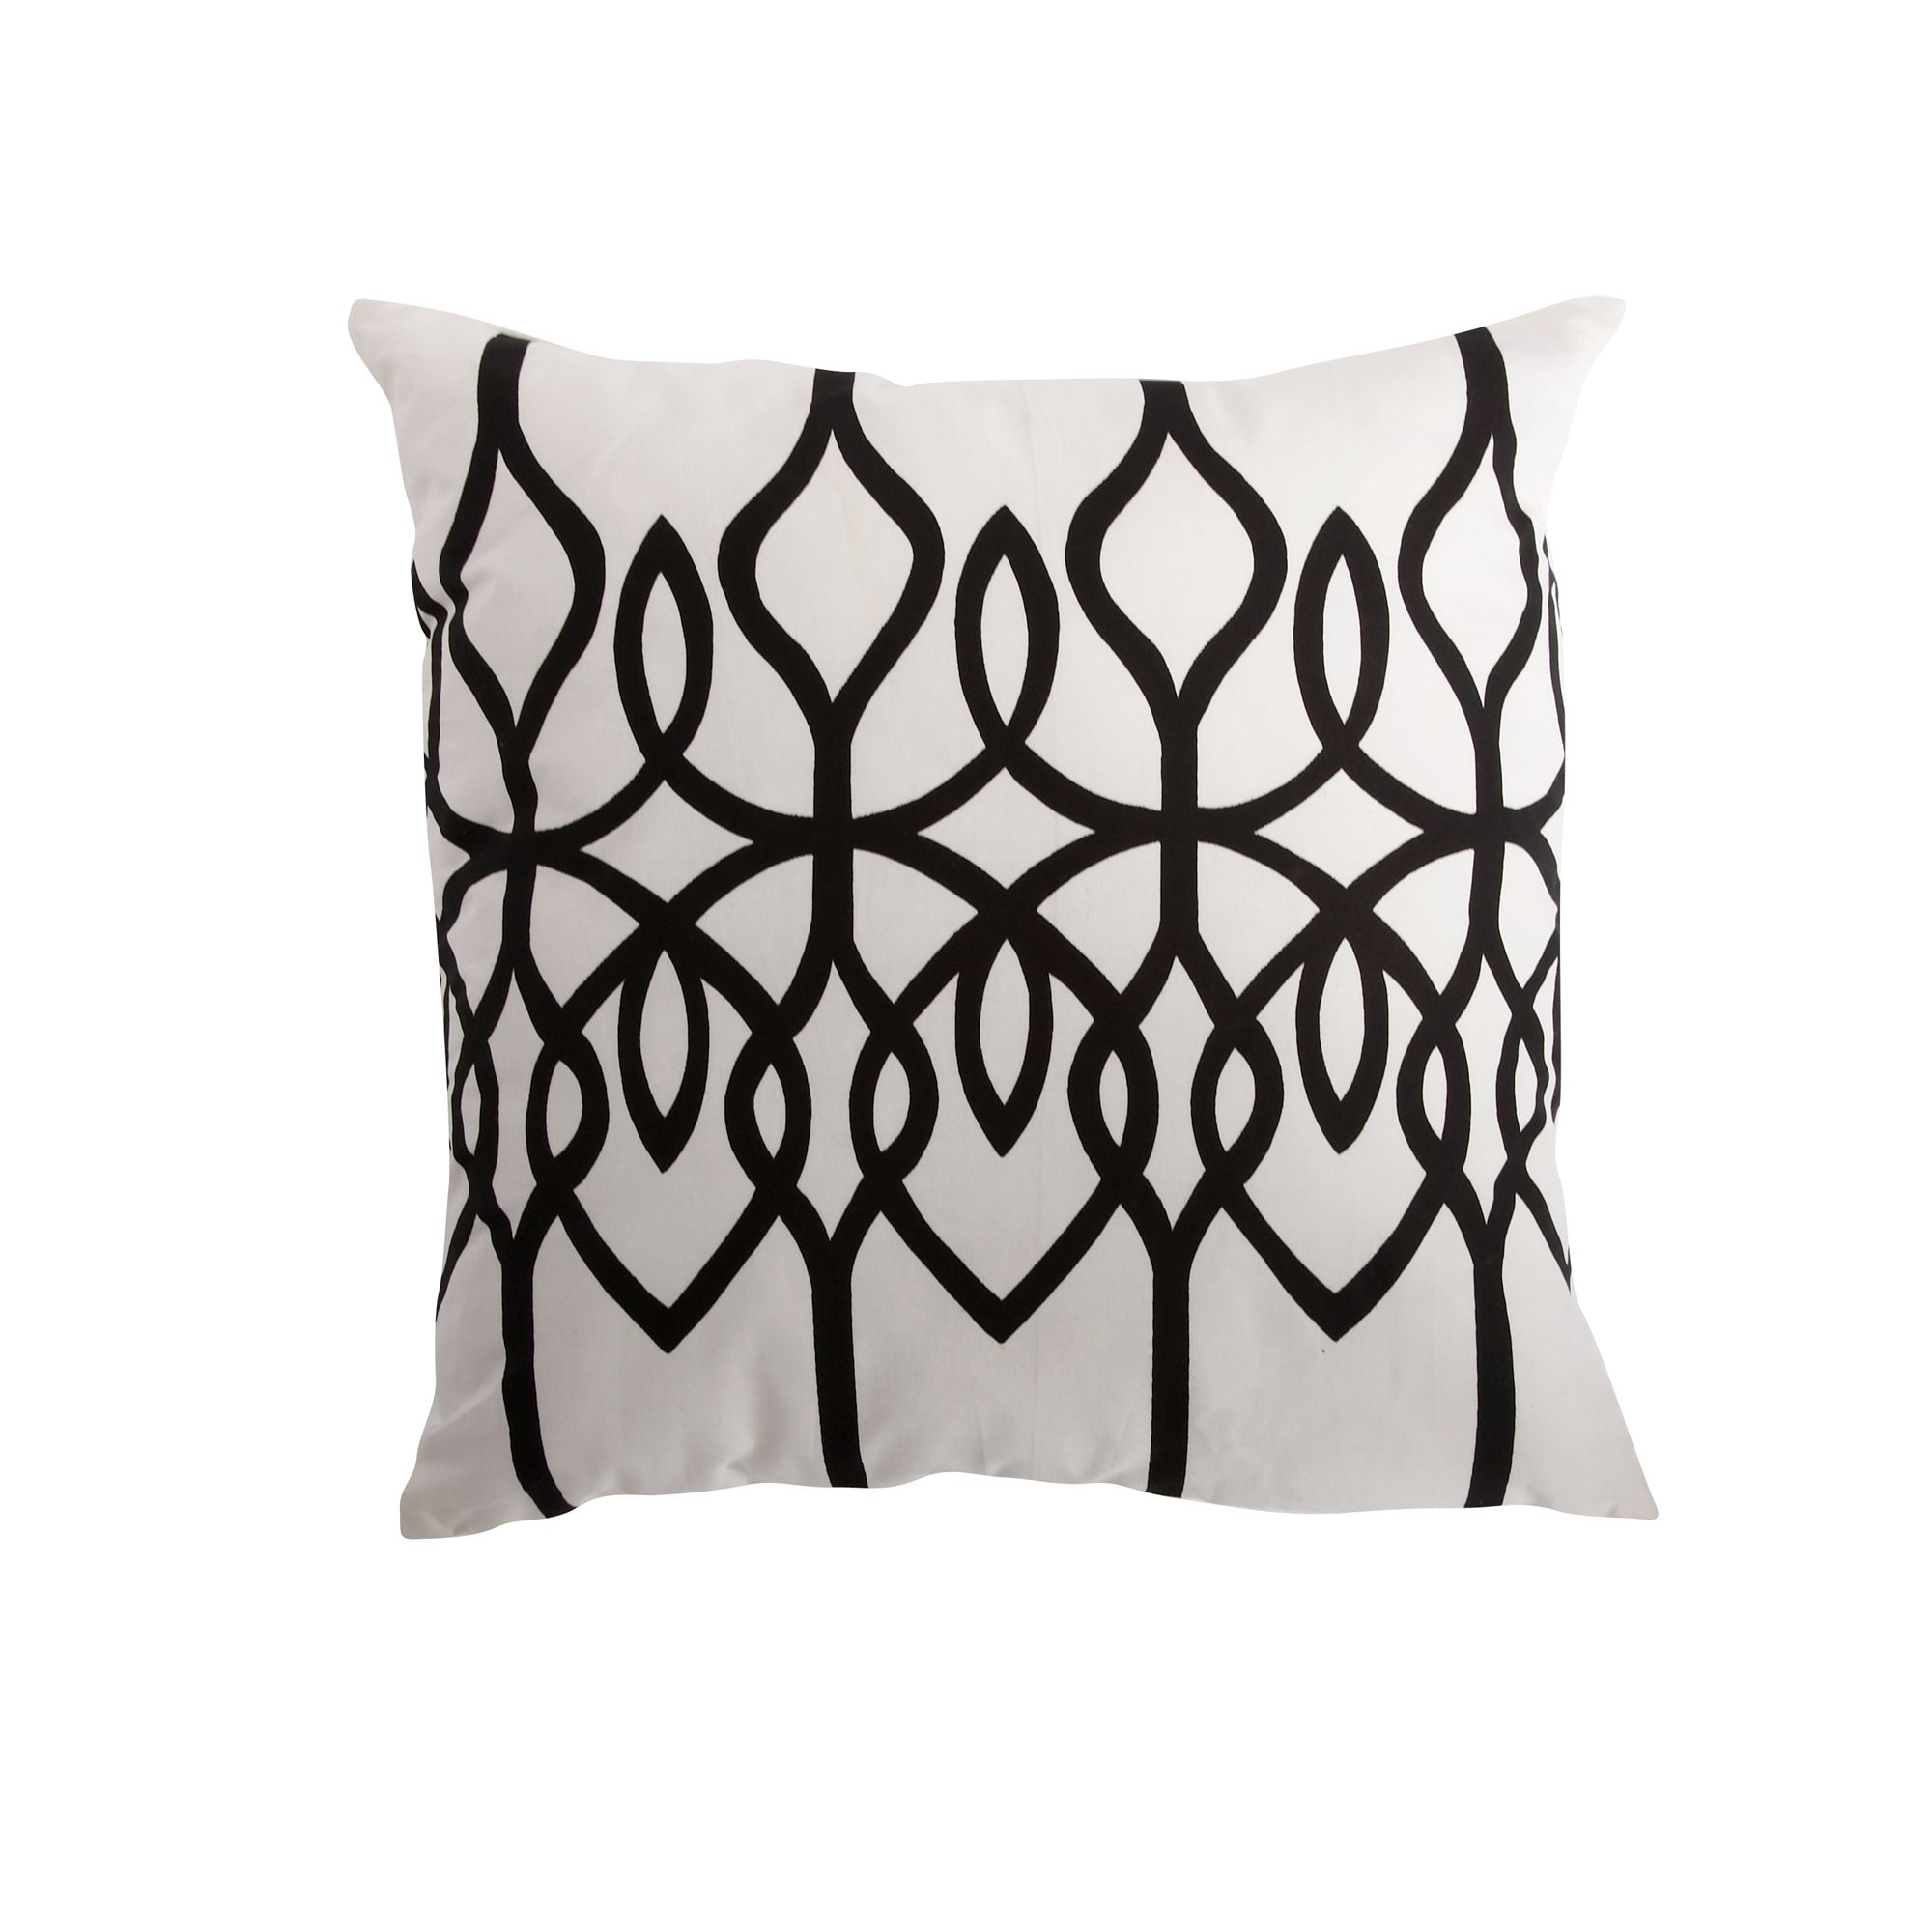 Linea Retro print cushion product image